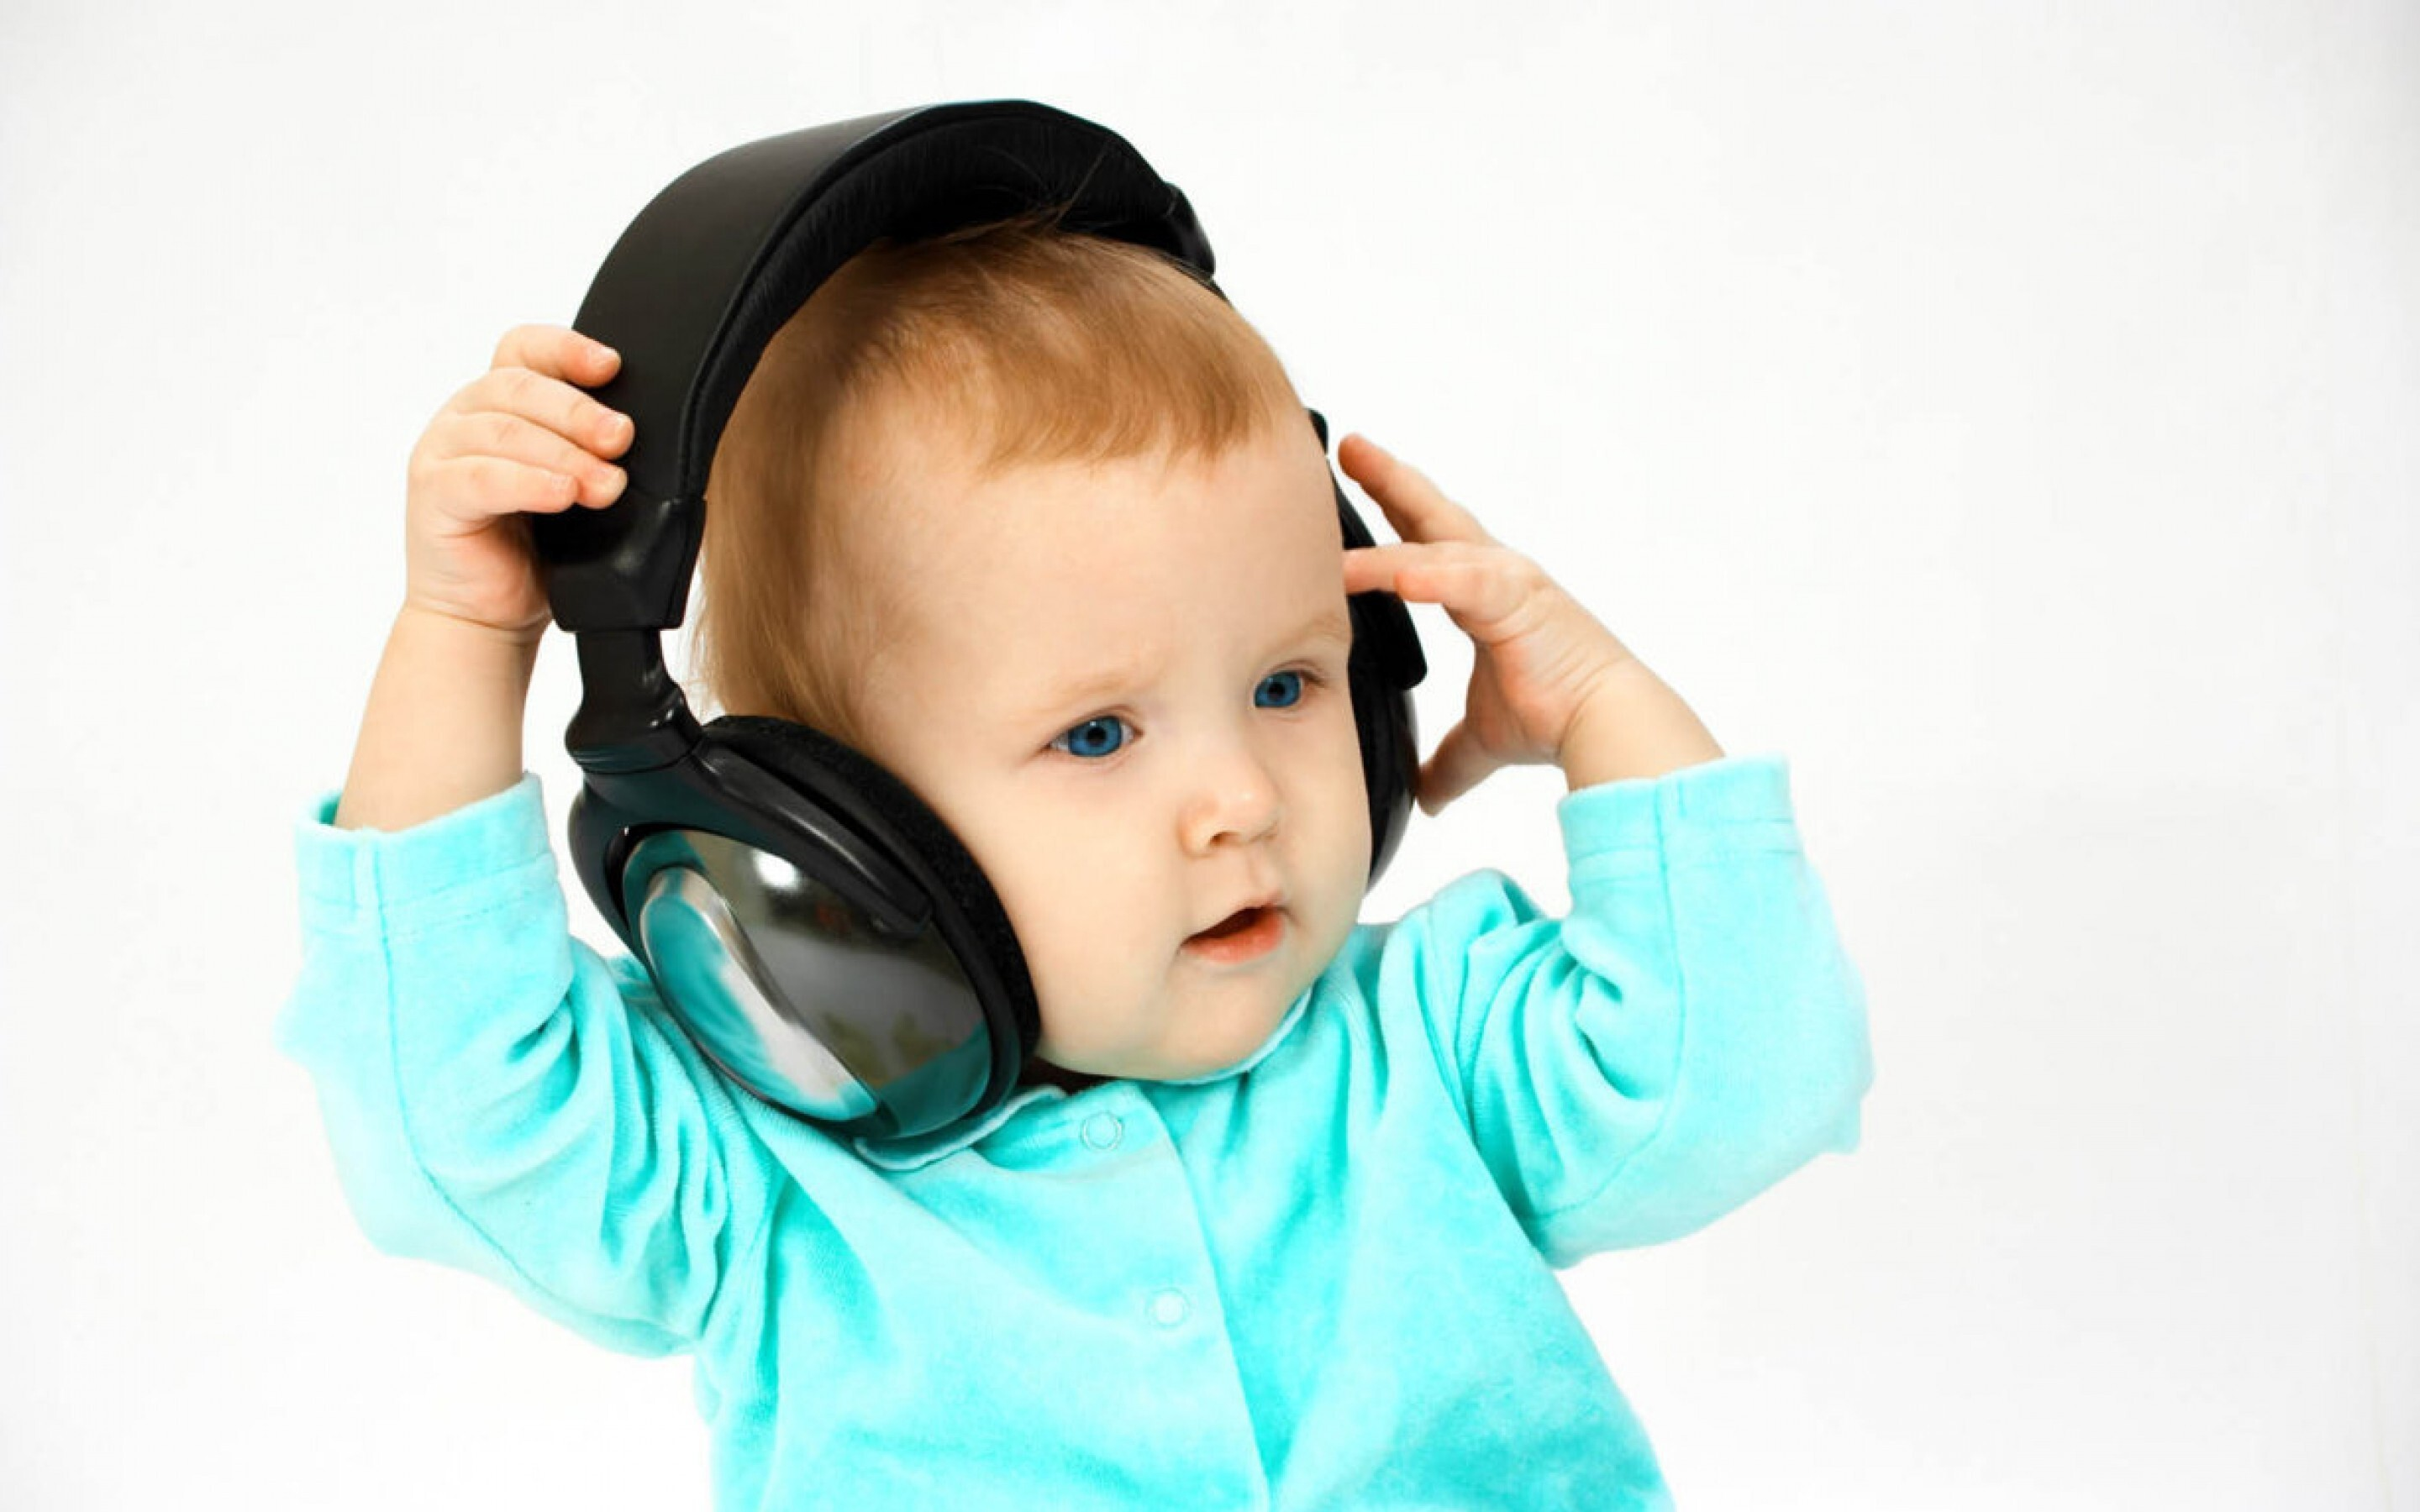 cute baby litioning song in headphone wallpapers | hd wallpapers